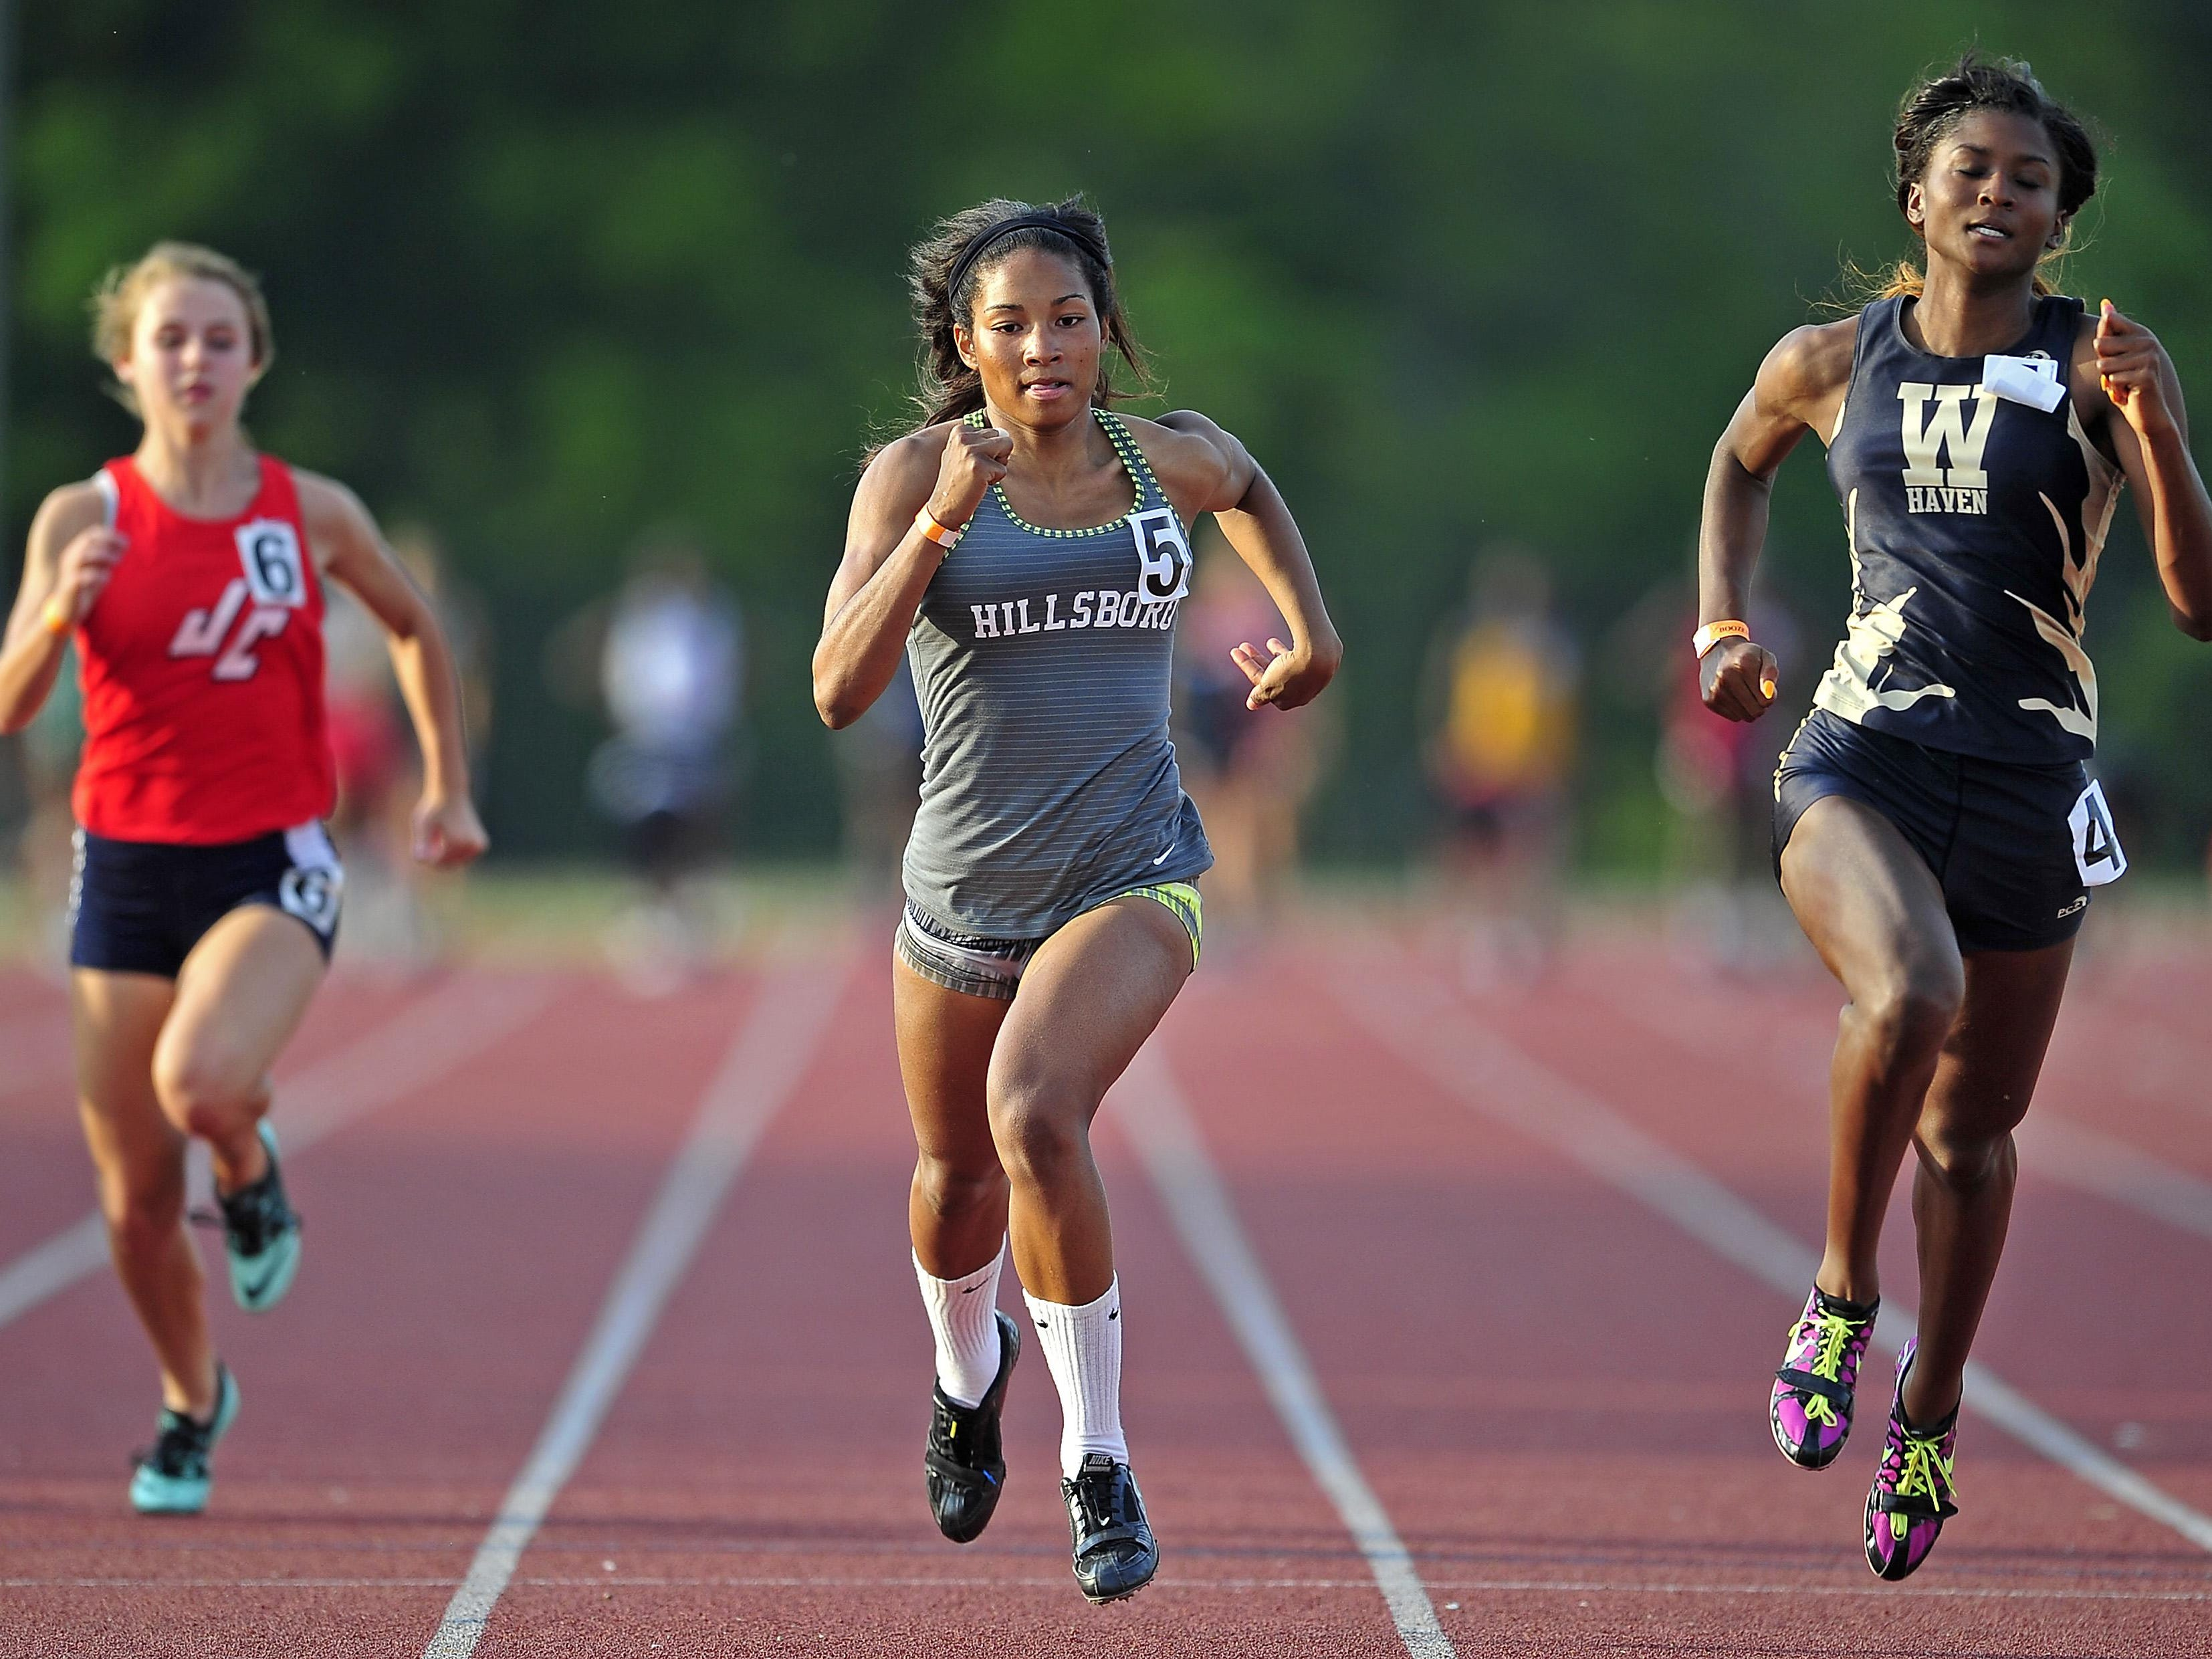 Hillsboro's Janel Pate (5) is a member of the first-team girls All-Midstate track and field team.